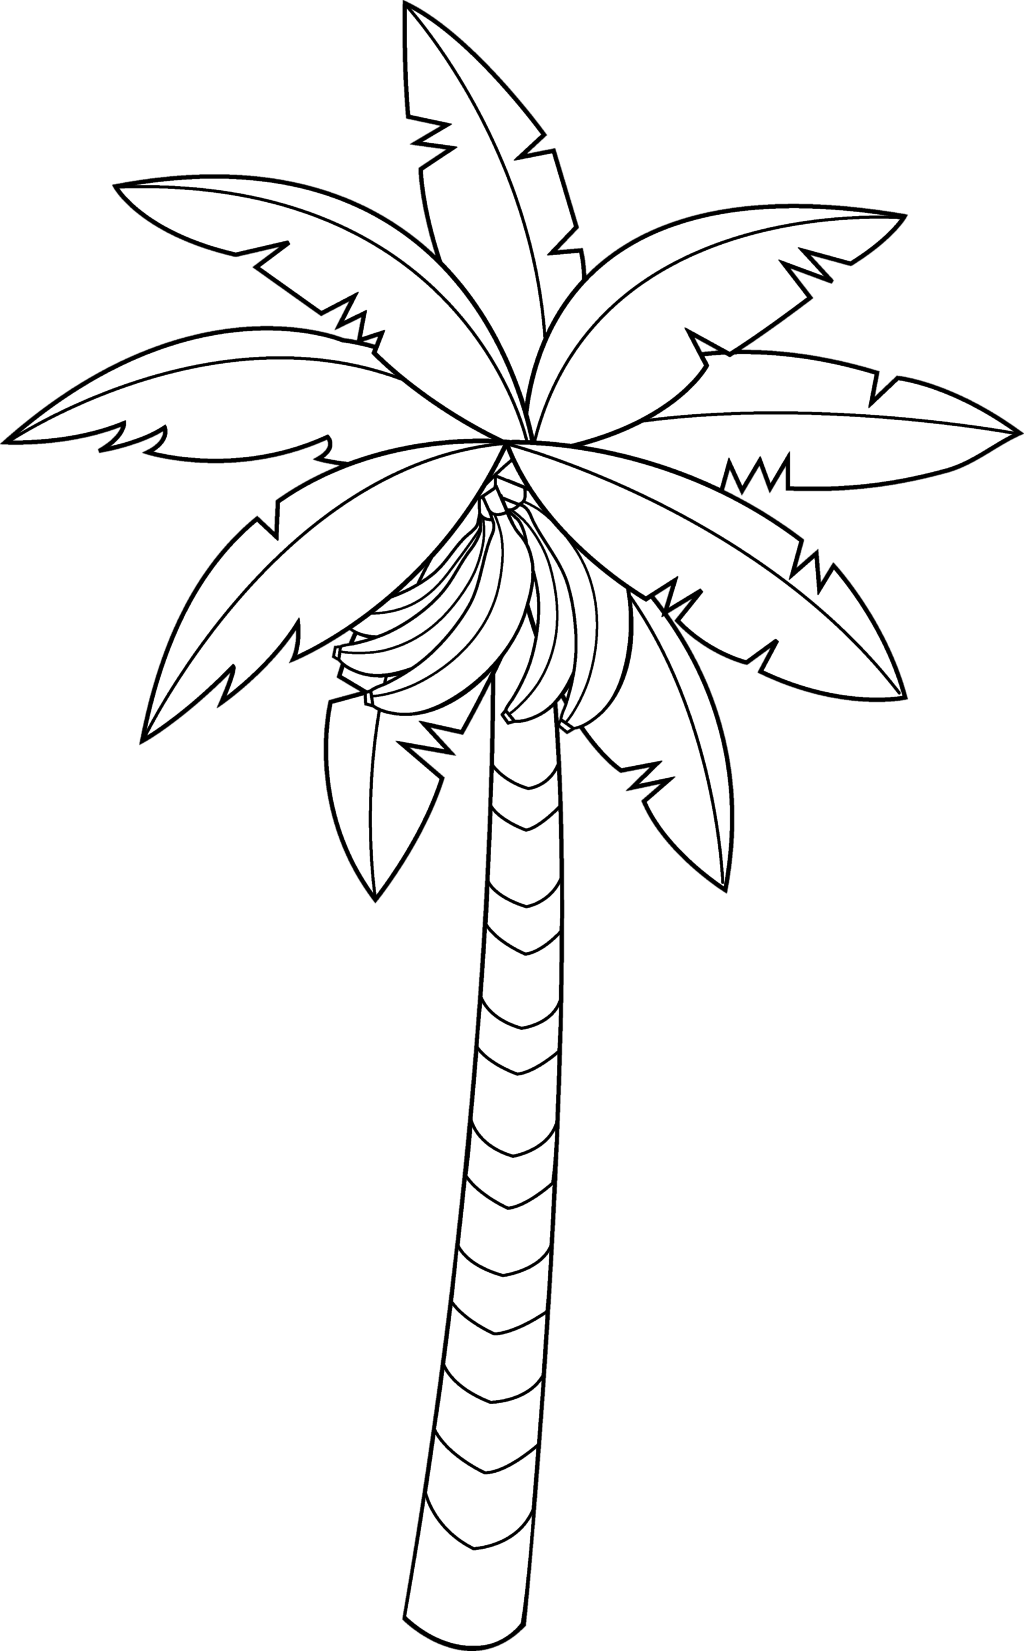 Banana tree clipart clipart black and white stock 28+ Collection of Banana Tree Clipart Black And White | High quality ... clipart black and white stock